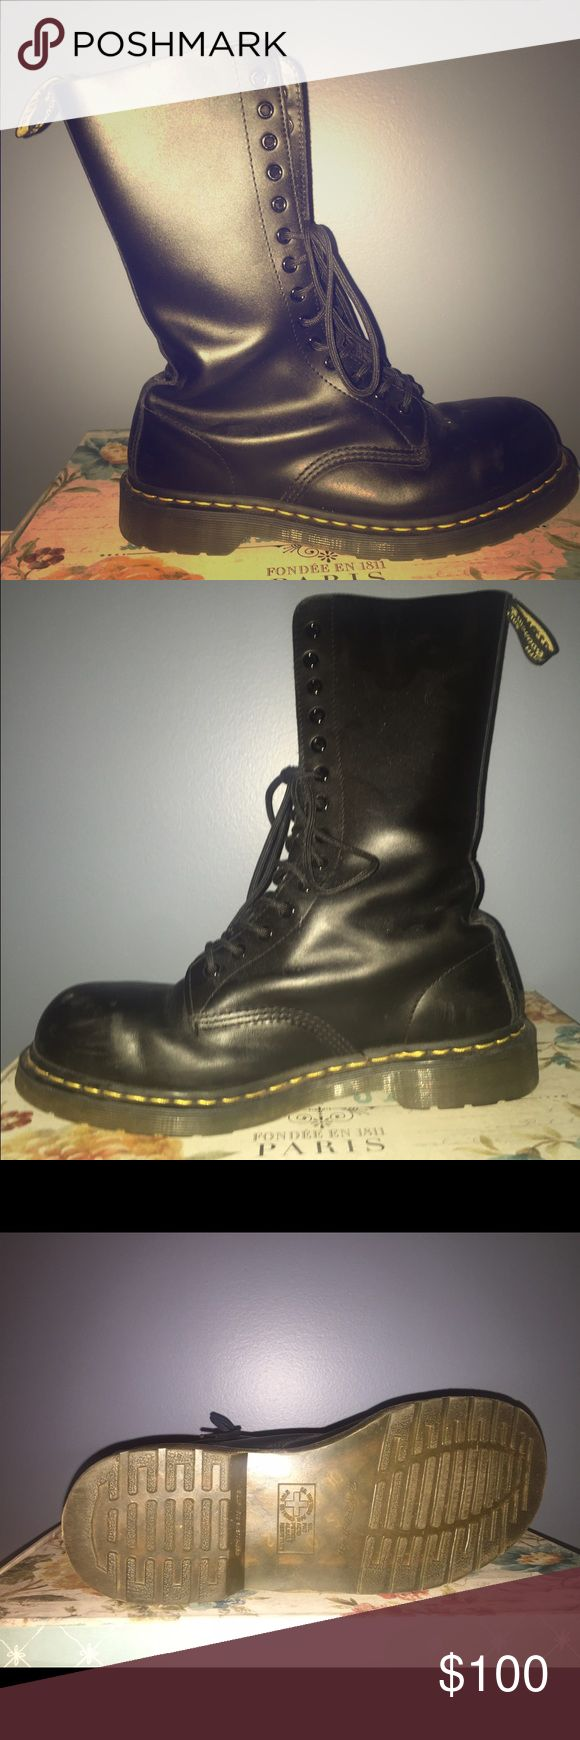 Dr. Martens size 10 14-Eye Steel Cap Boot Black Size 10 in men's, 11 in women's. Worn only a few times, little bit of scuffs on the toe. Dr. Martens Shoes Boots